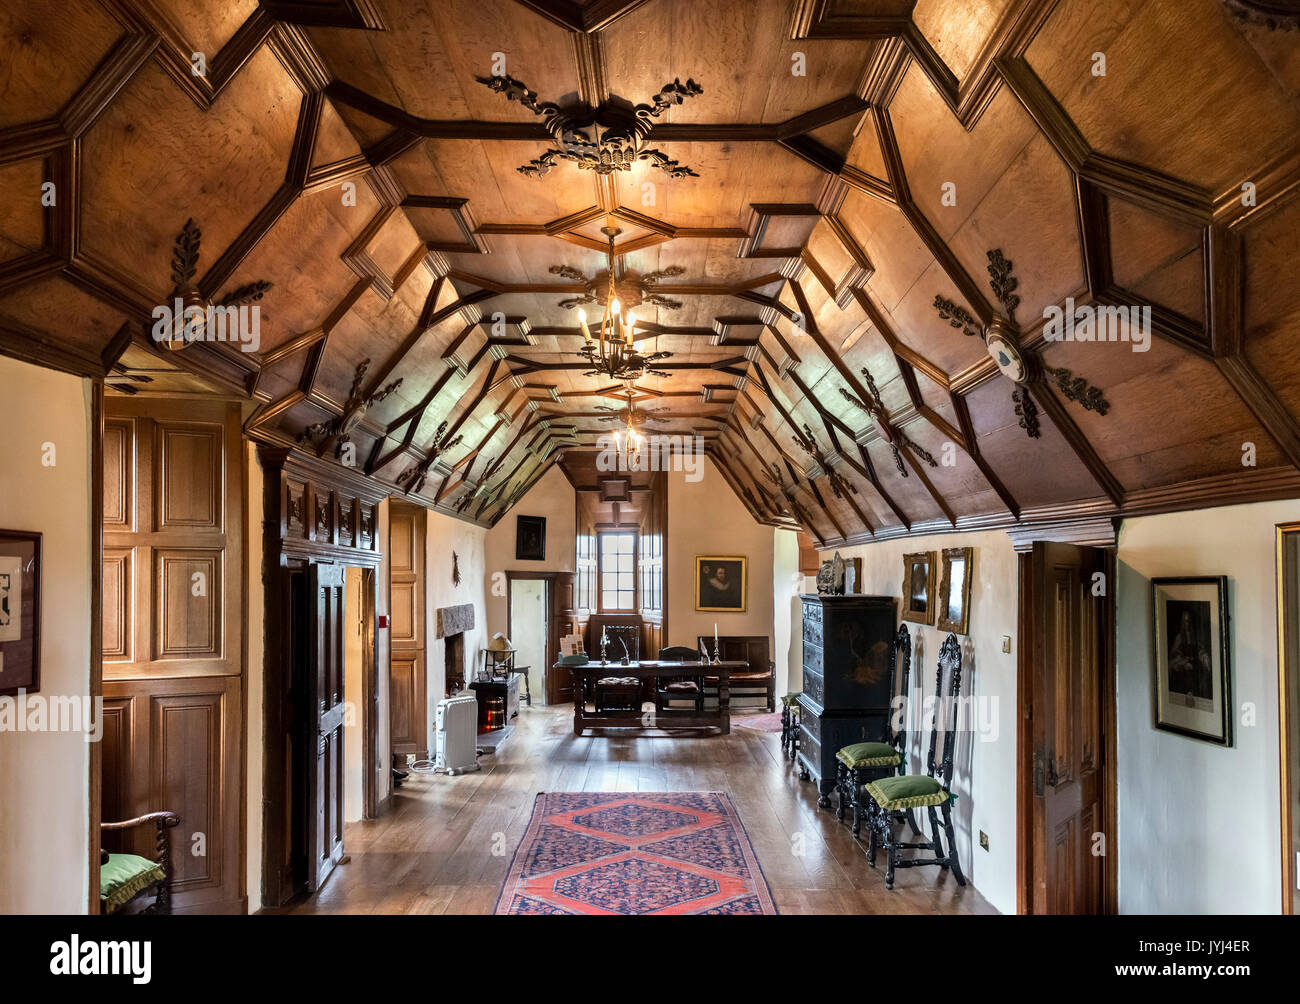 The Long Gallery with its 17th century oak panelled ceiling, Crathes Castle, Banchory, Aberdeenshire, Scotland, - Stock Image